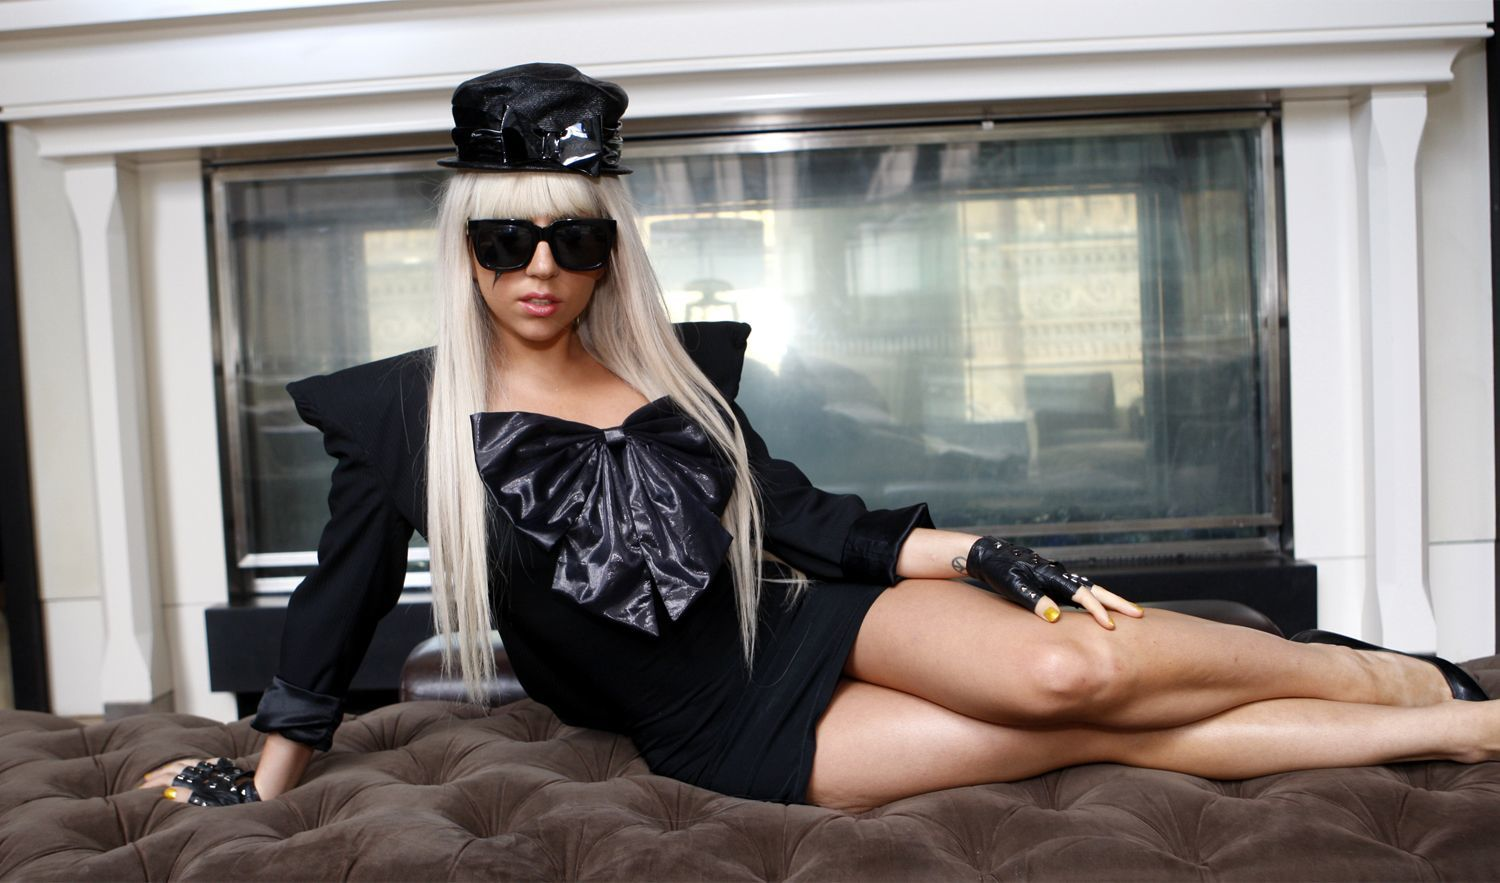 lady gaga singers Celebrity HD Wallpaper